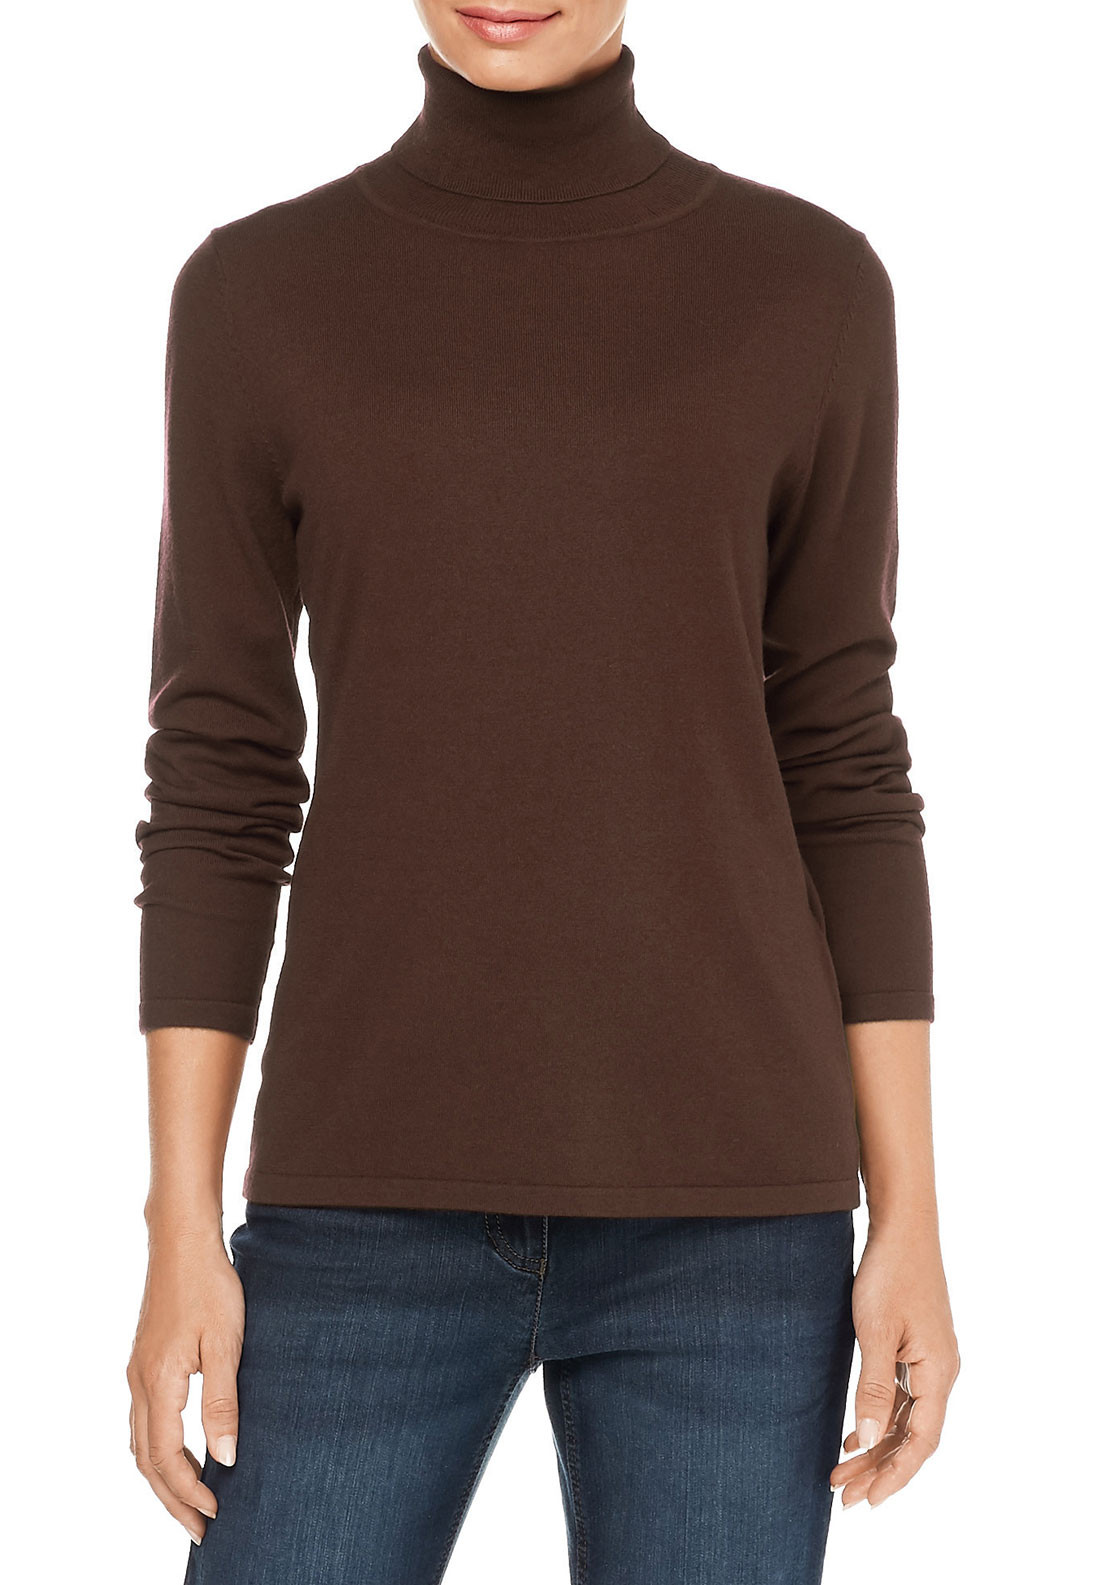 Gerry Weber Polo Neck Sweater, Light Brown